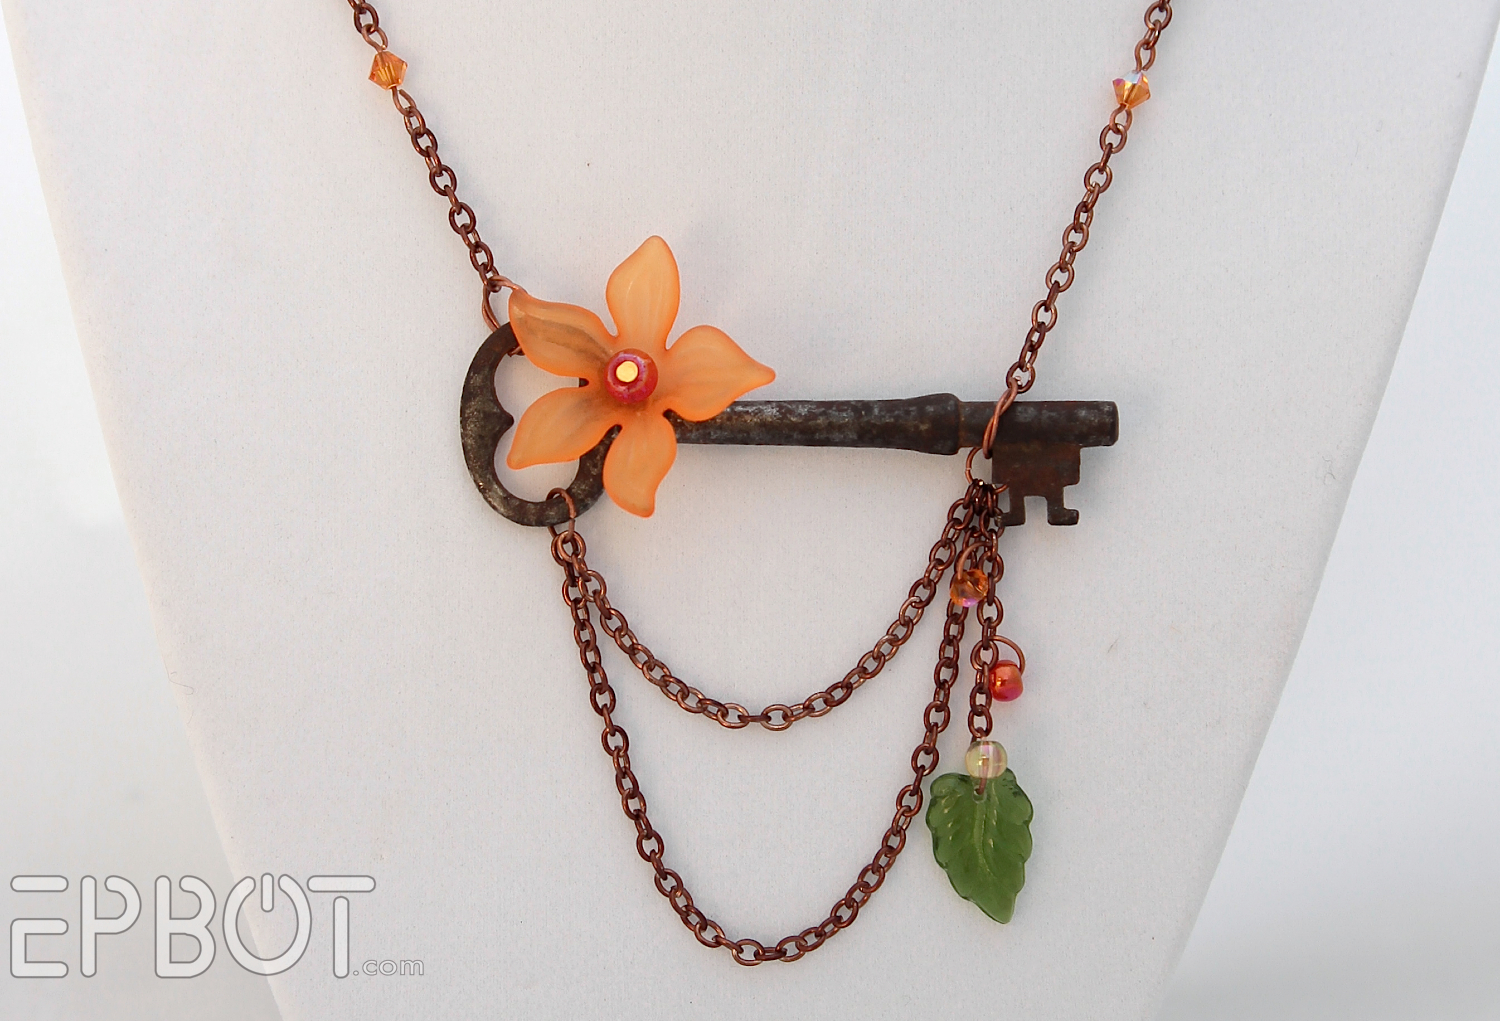 Epbot my diy vintage skeleton key necklaces aloadofball Image collections